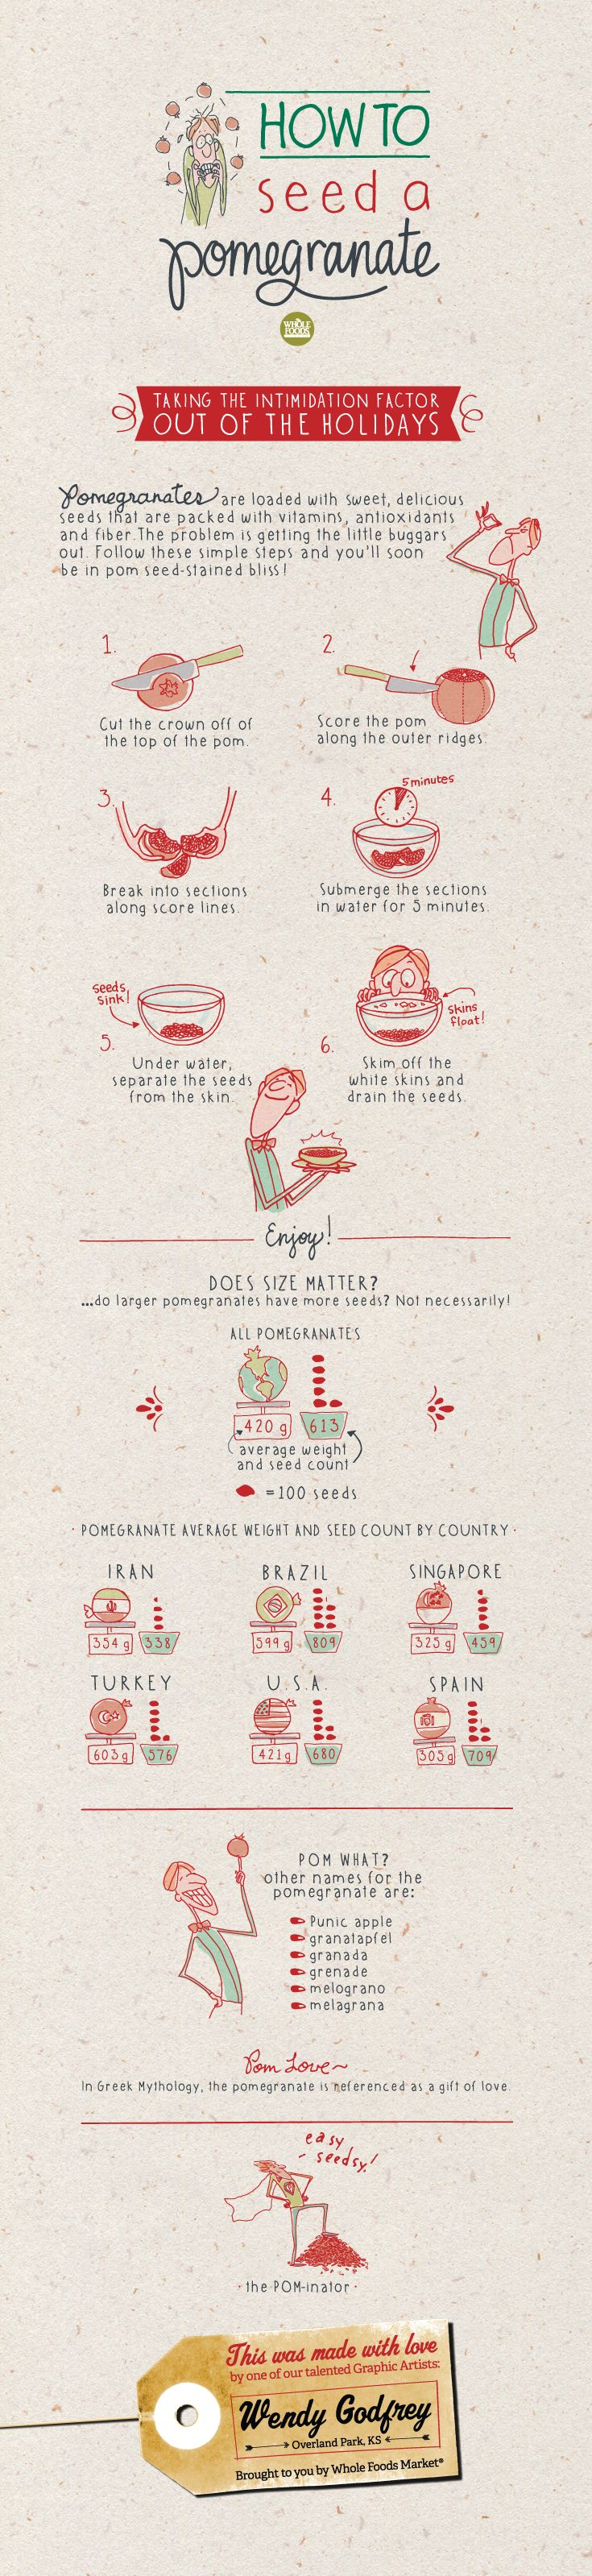 Unique Infographic Design, How To Seed A Pomegranate @qinshan0201 #Infographic #Design (http://www.pinterest.com/aldenchong/)